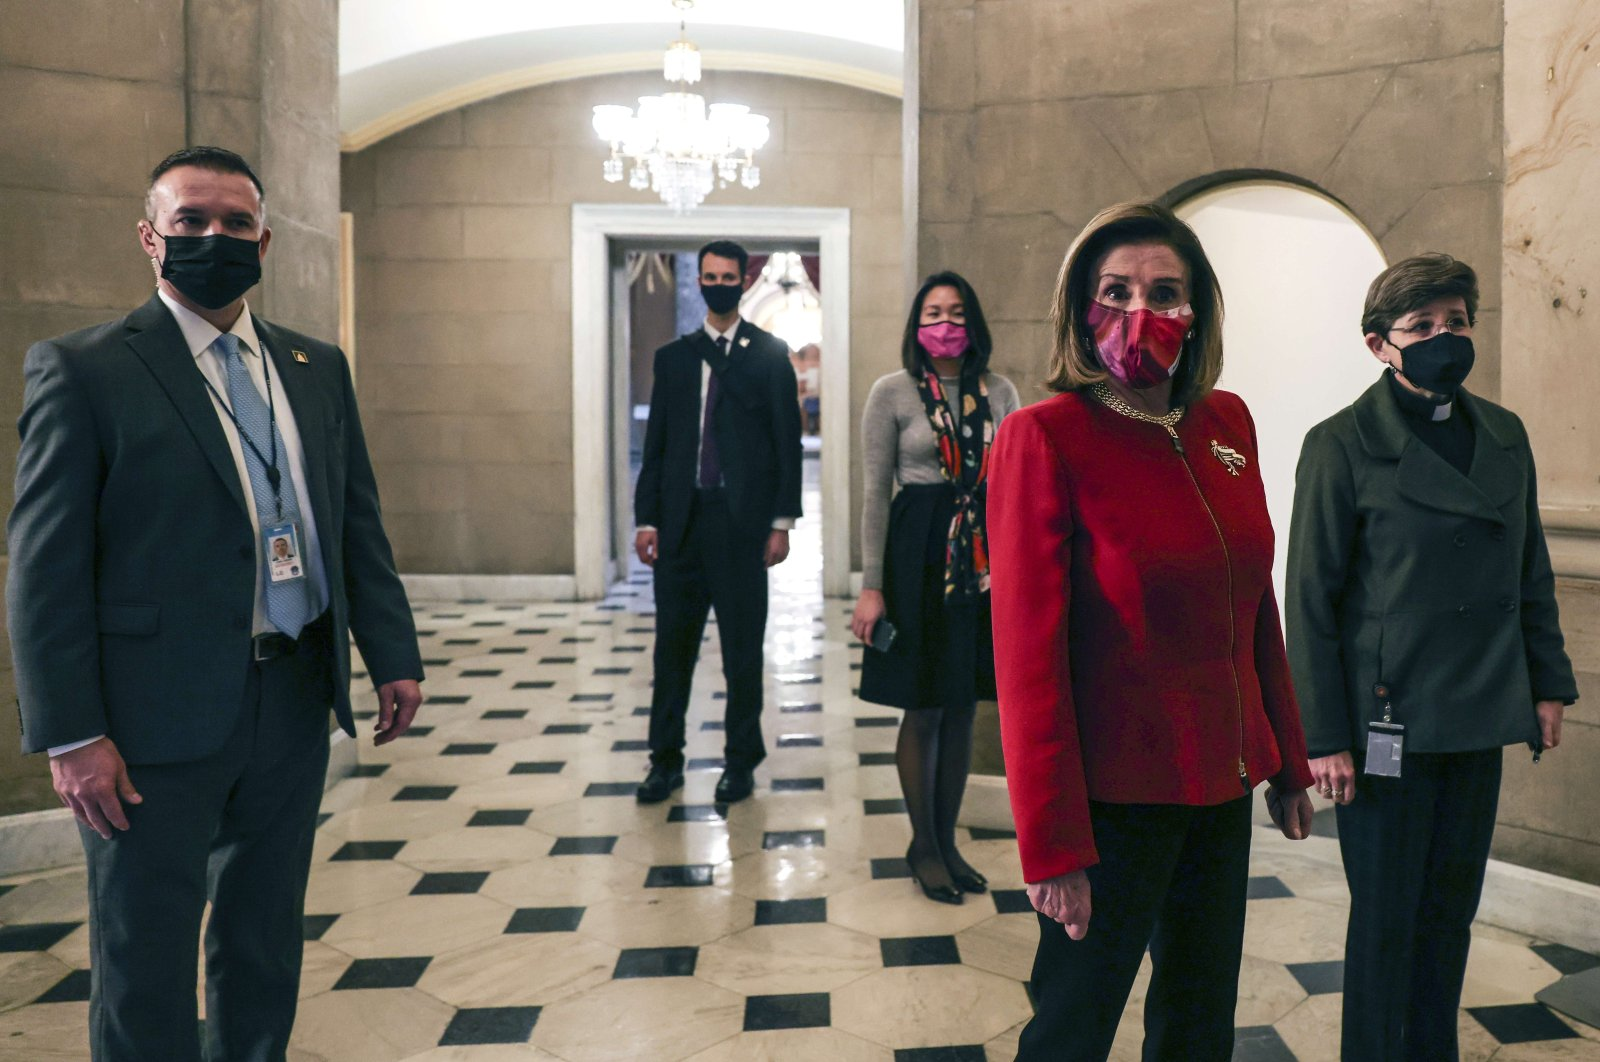 Speaker of the House Nancy Pelosi (D-CA) heads back to her office after calling the House of Representatives into a pro forma session in Washington, D.C., Jan. 25, 2021. (AFP Photo)